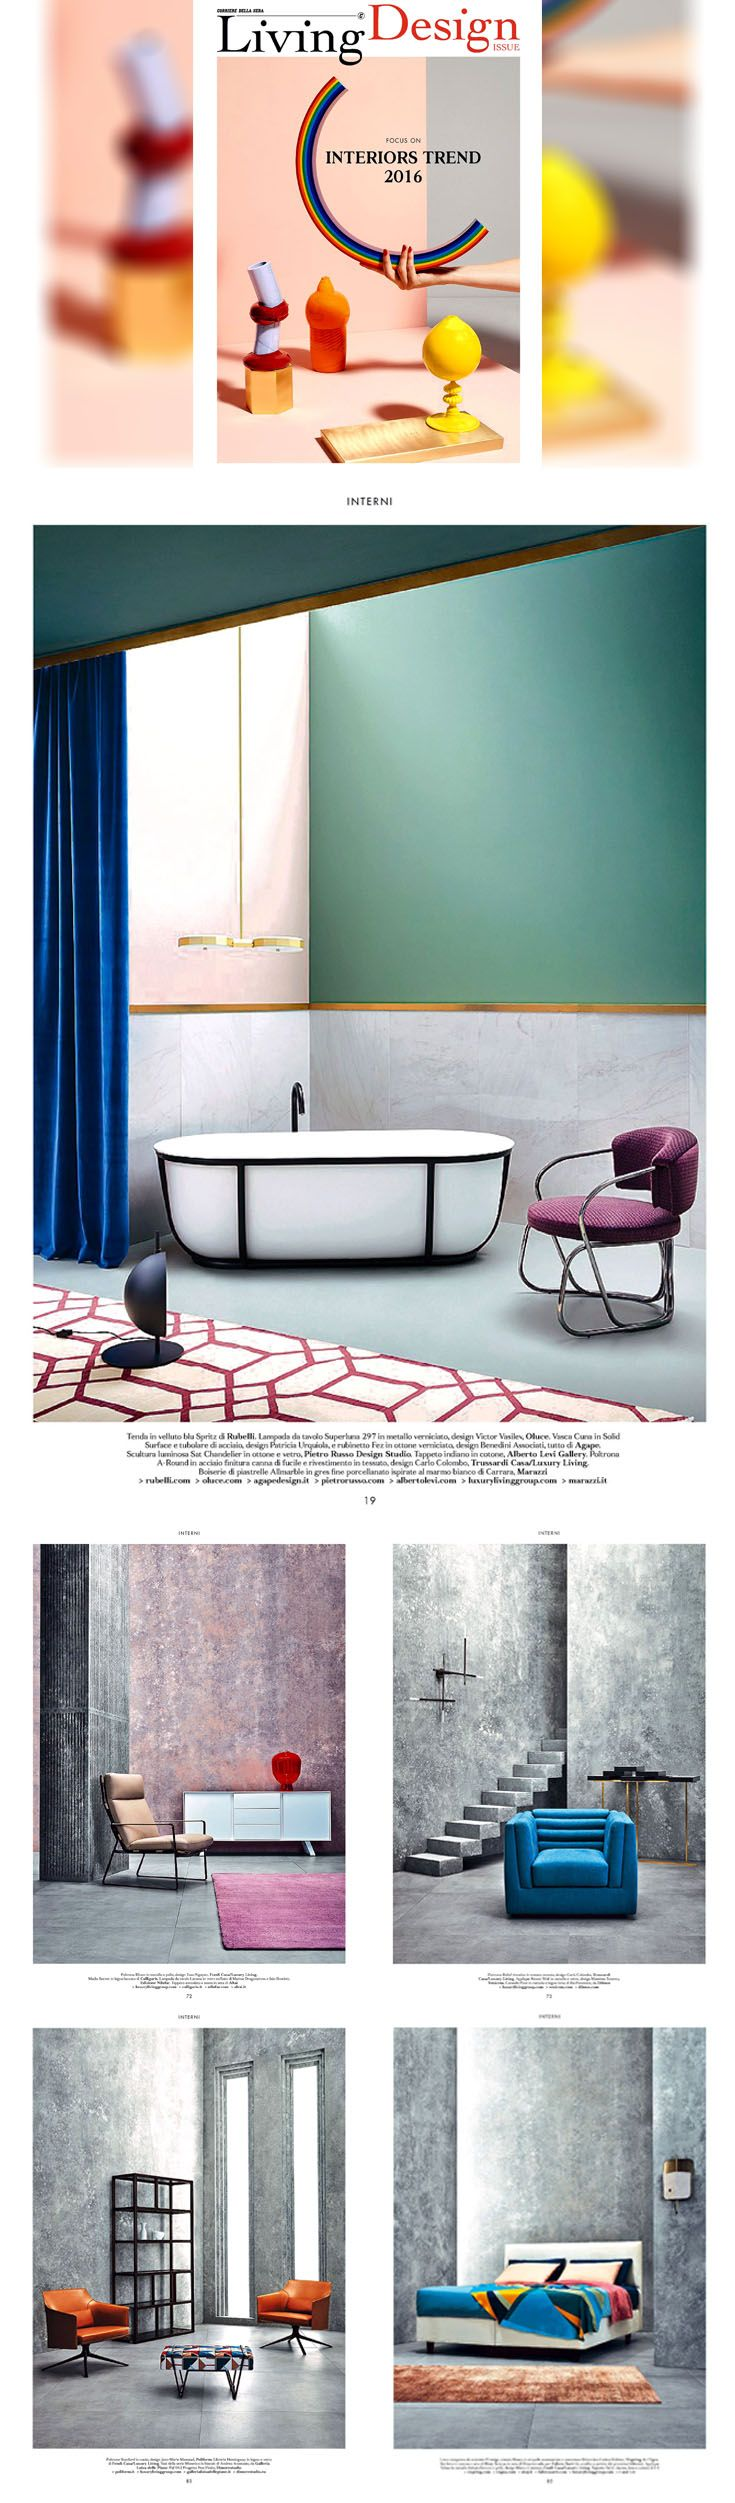 Let's discover the latest #Fendi Casa and #Trussardi Casa Collections today featured on the first Design issue of #LivingCorriere